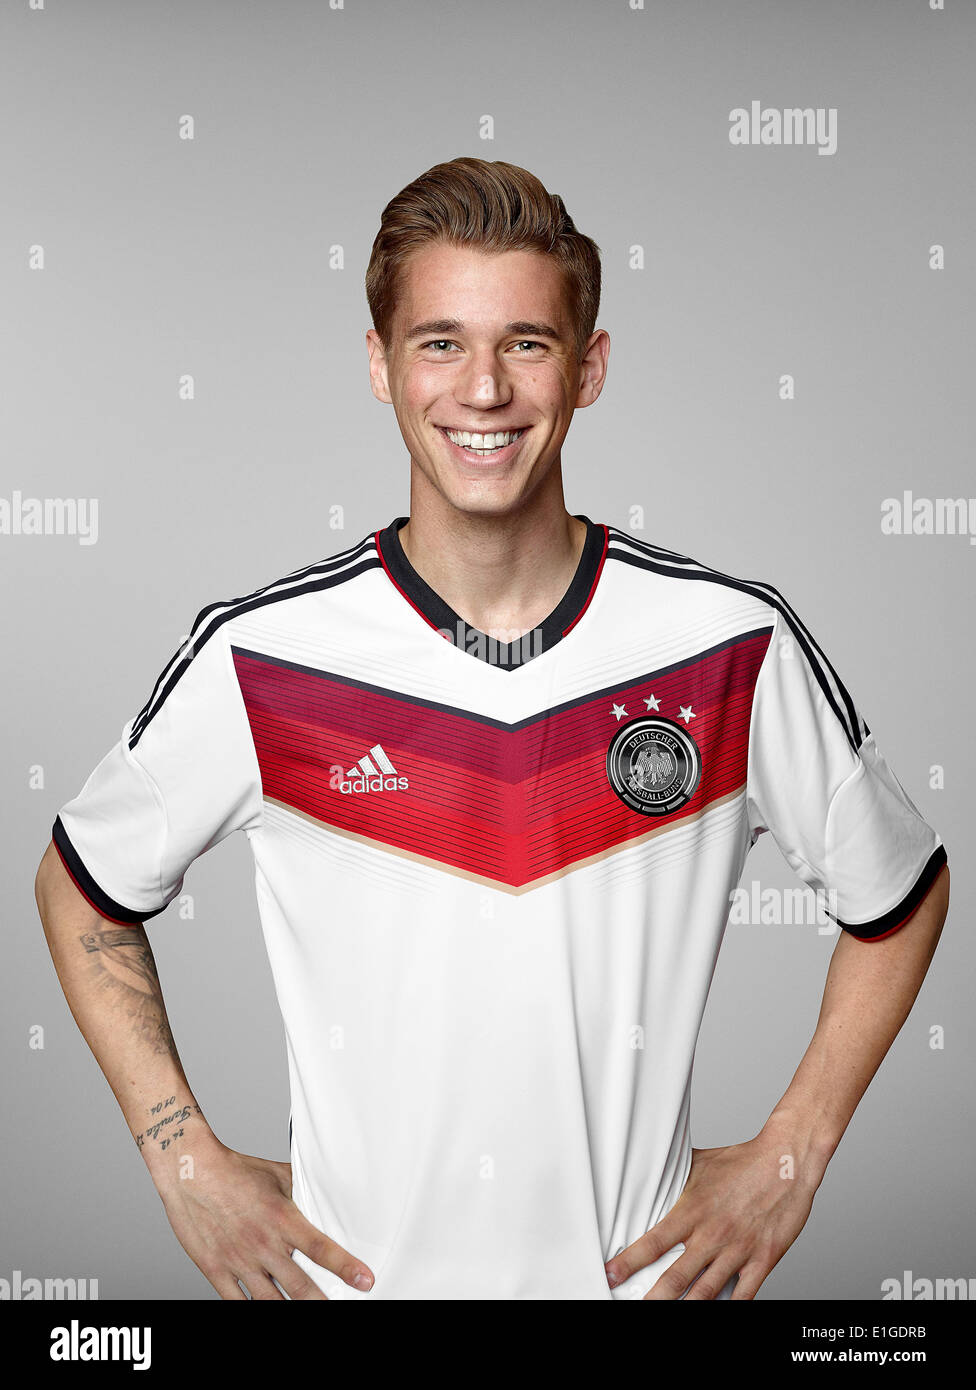 FIFA World Cup 2014 - photocall Team Germany, 24 May 2014 in Passeier, Italy: Erik Durm. Photo credit: Bongarts/Getty Images/German Football Association/dpa (editorial use only) - Stock Image